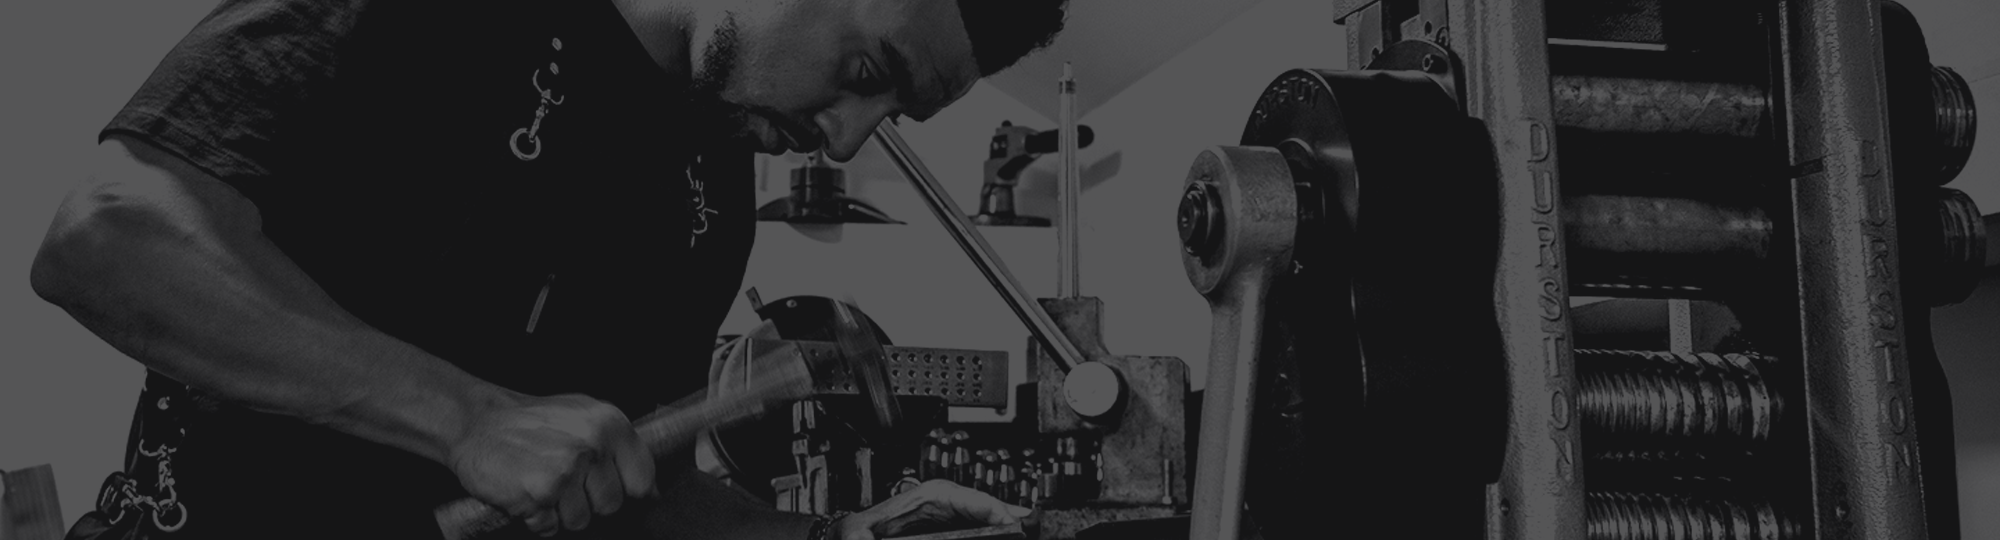 + Apparel - // DEVELOPED BY TRADESMEN CRAFTED BY HAND.